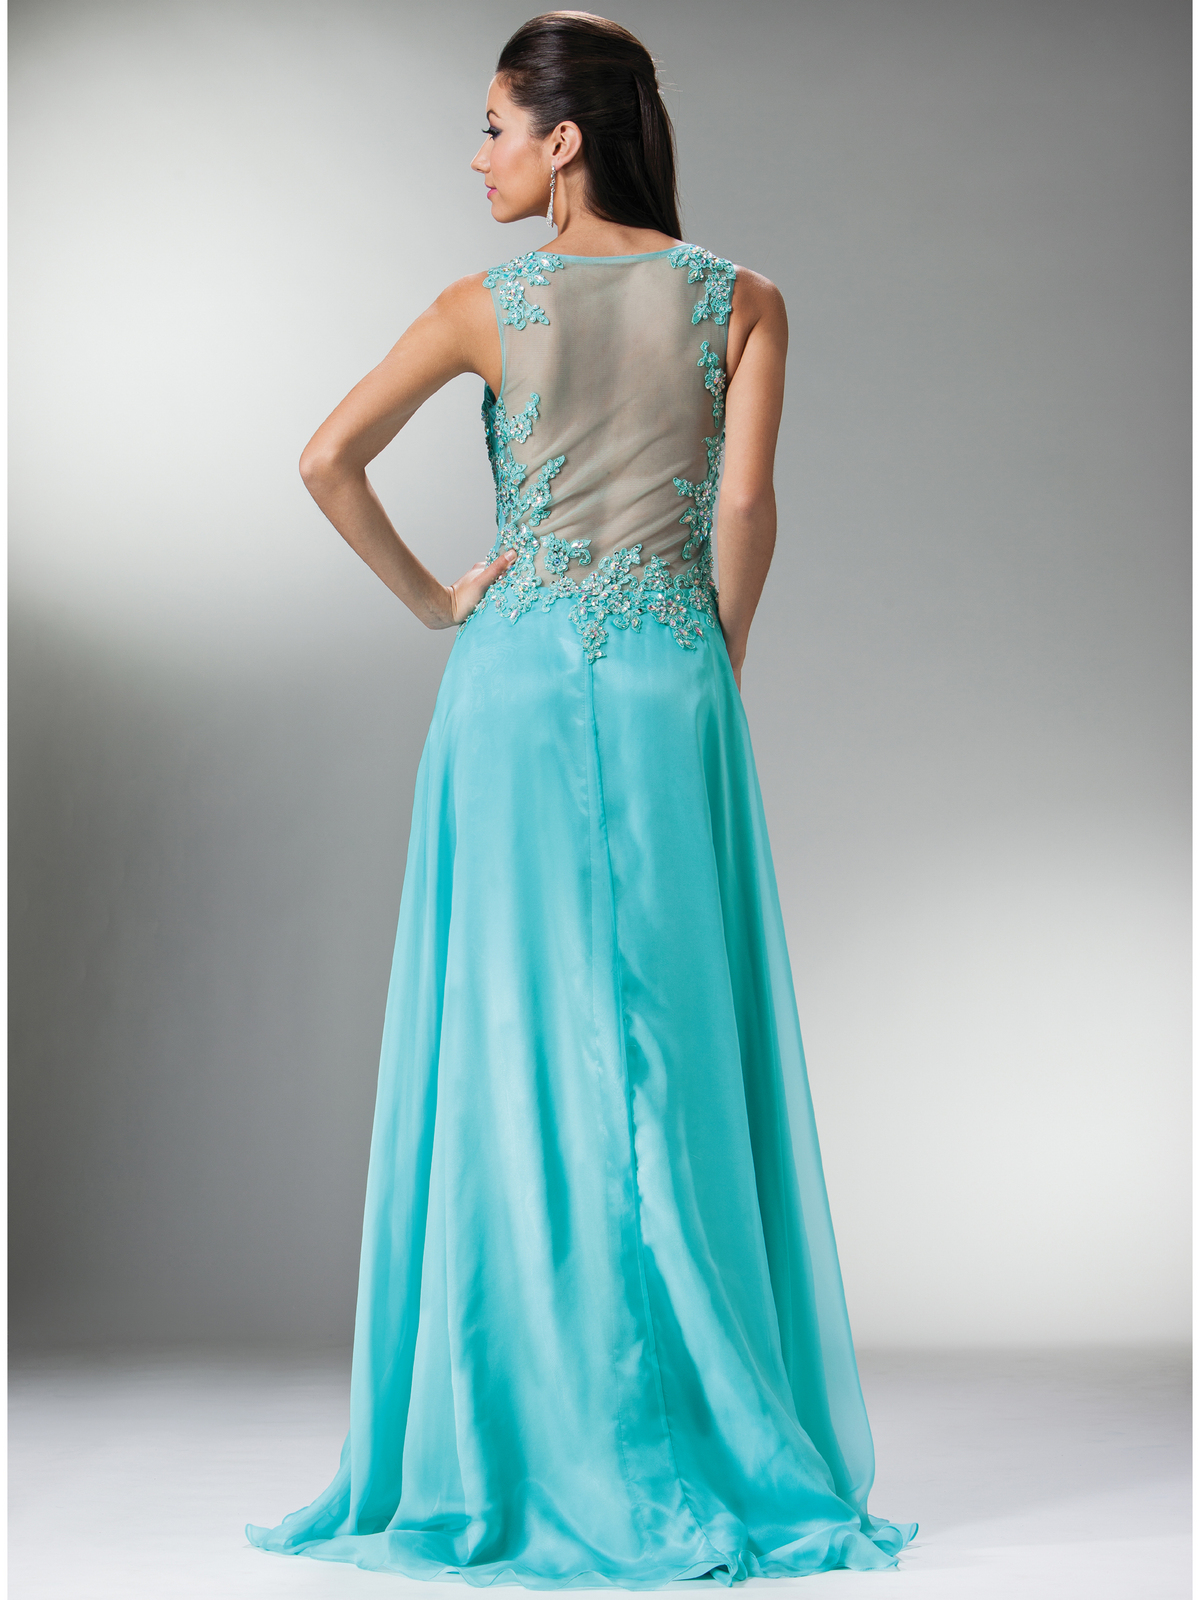 Old Fashioned Prom Dresses Grand Rapids Mi Sketch - All Wedding ...